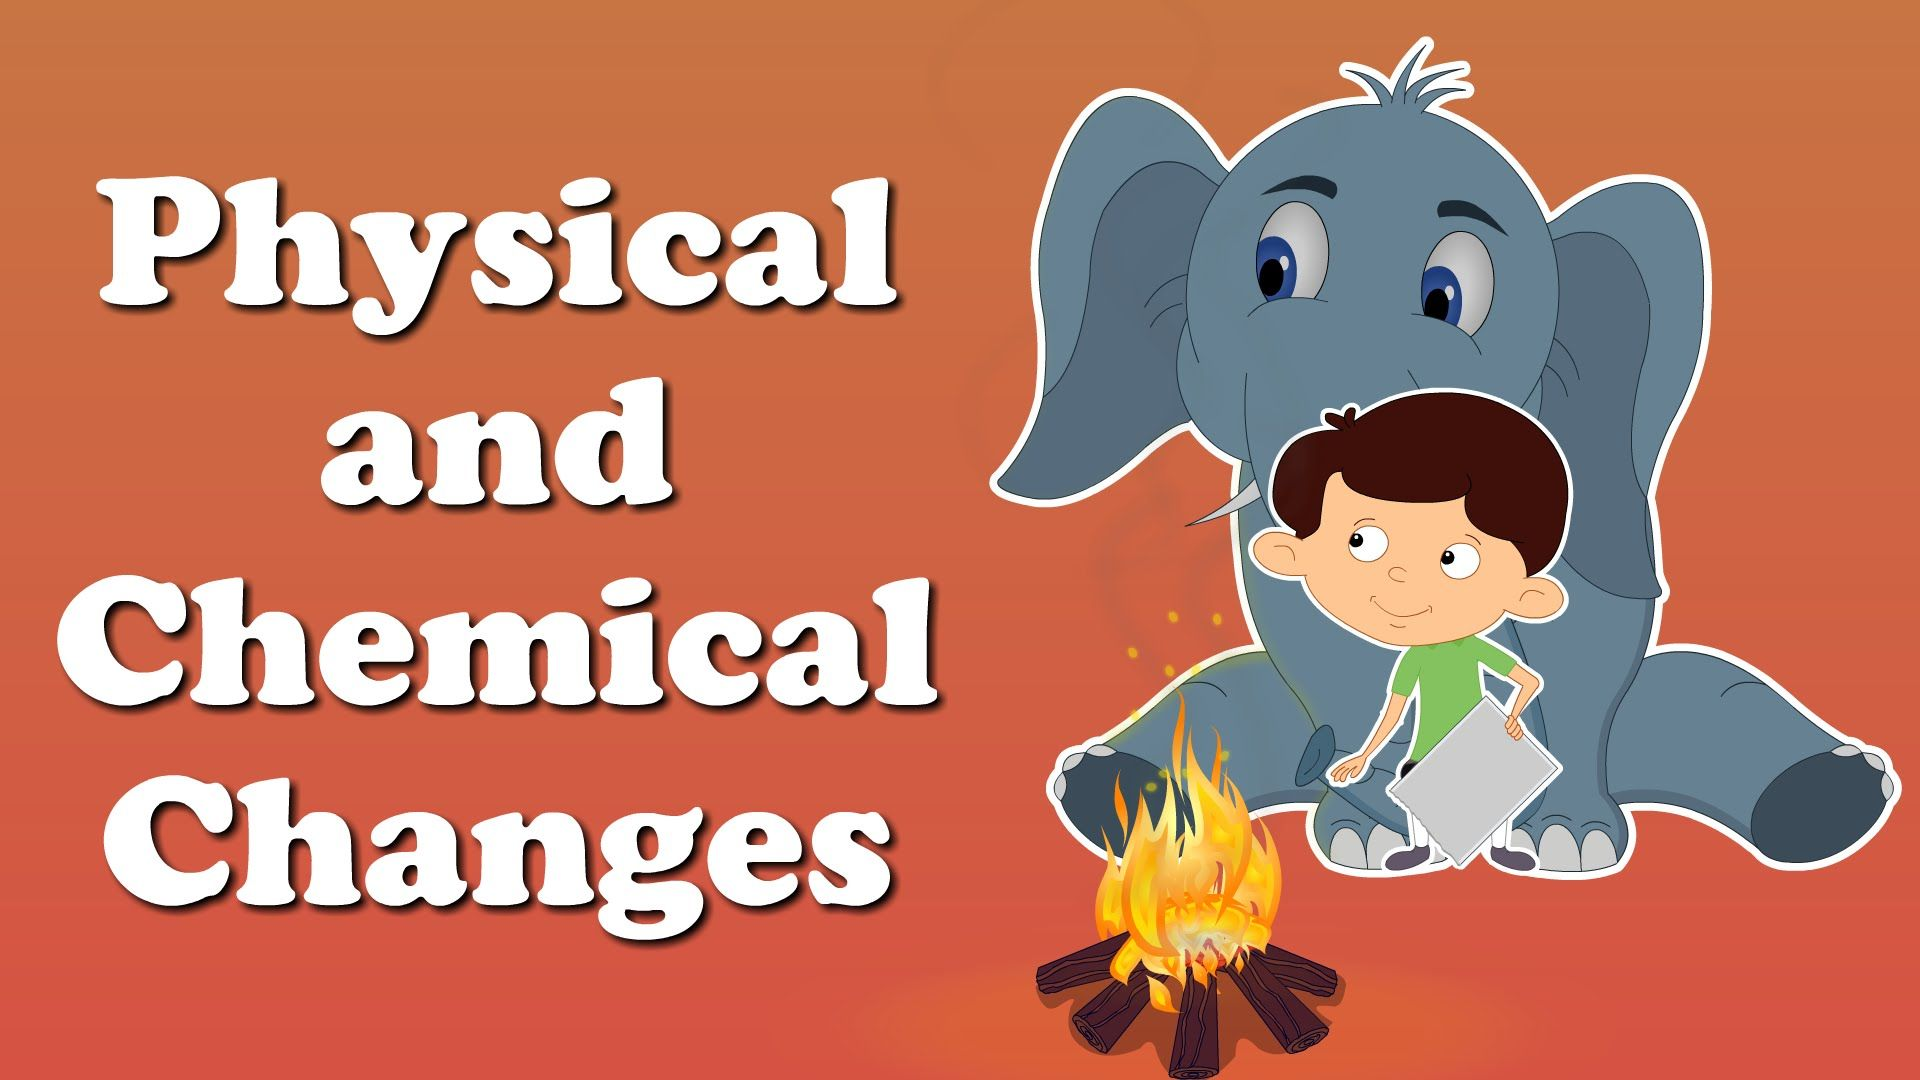 Physical And Chemical Changes For Kids Or For Dummies Like